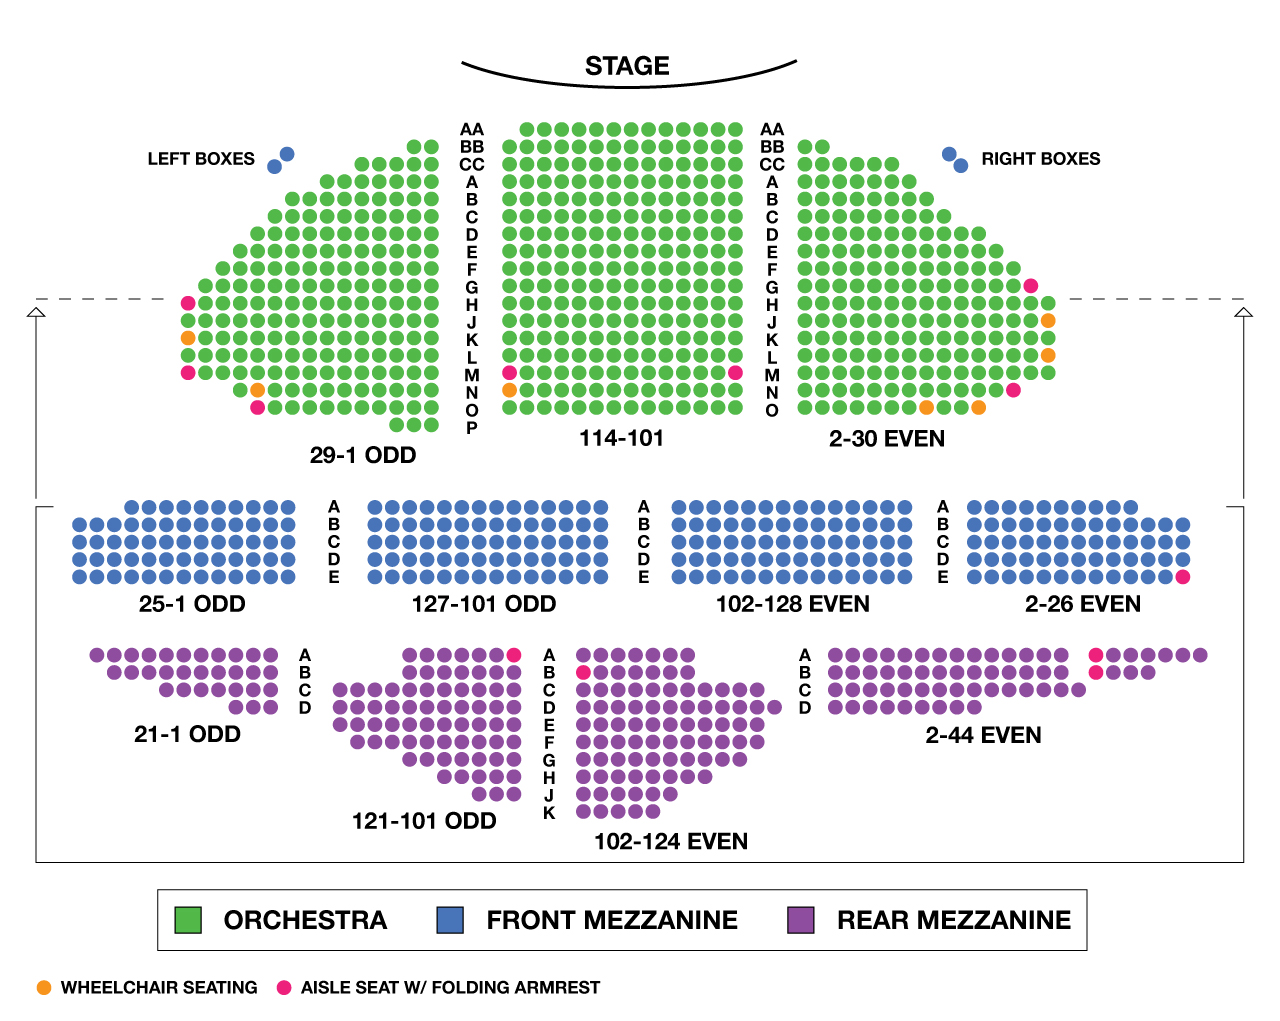 Ambassador Theatre Large Broadway Seating Charts